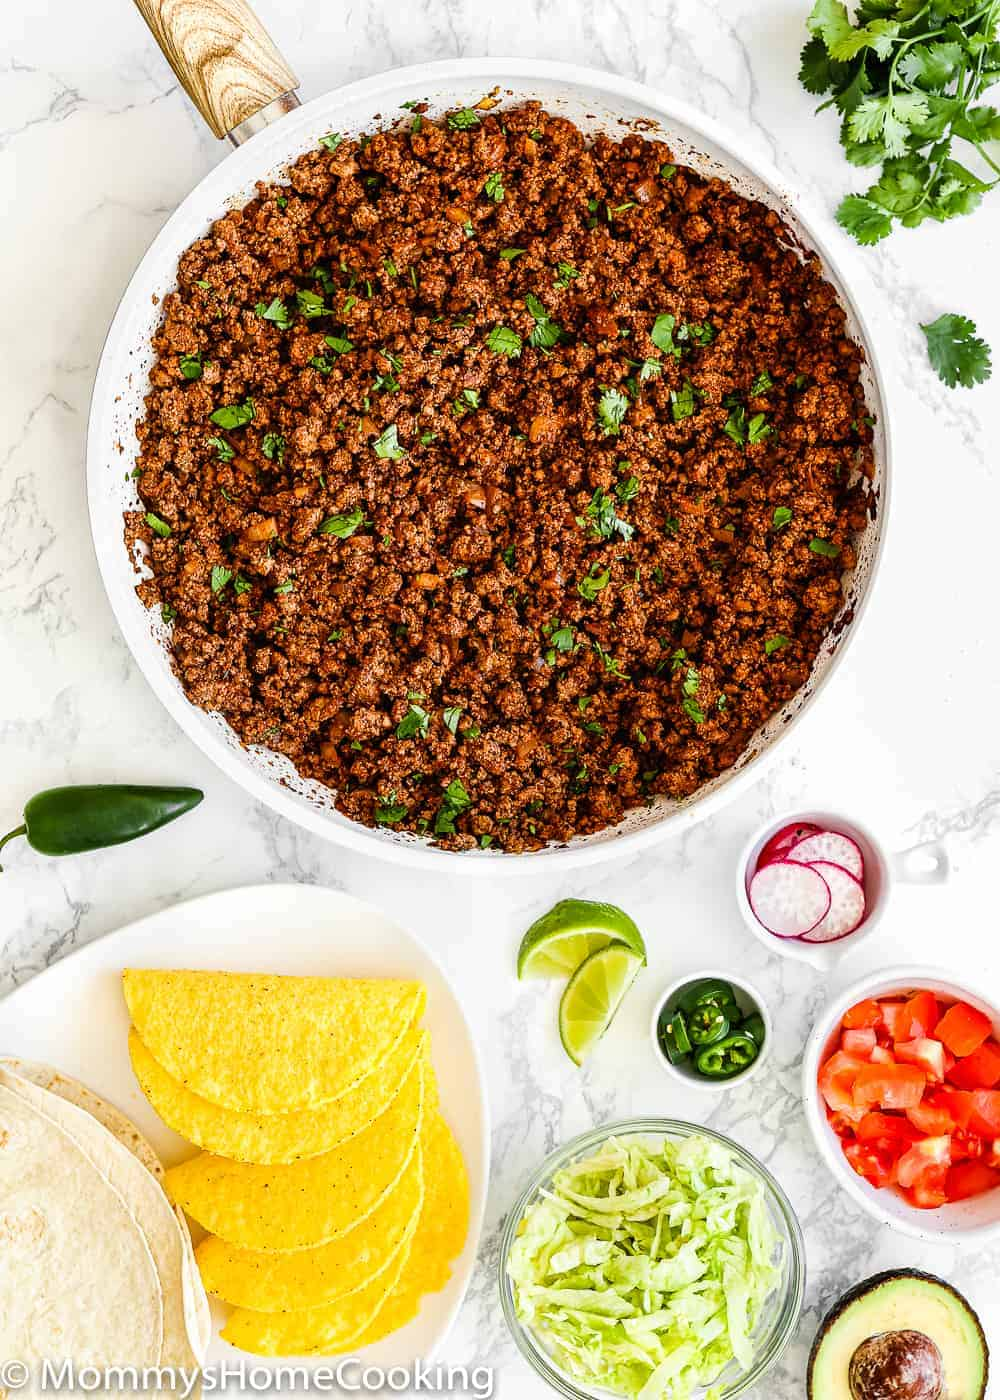 Cooked Ground Beef for Tacos in a skillet surrounded by taco toppings